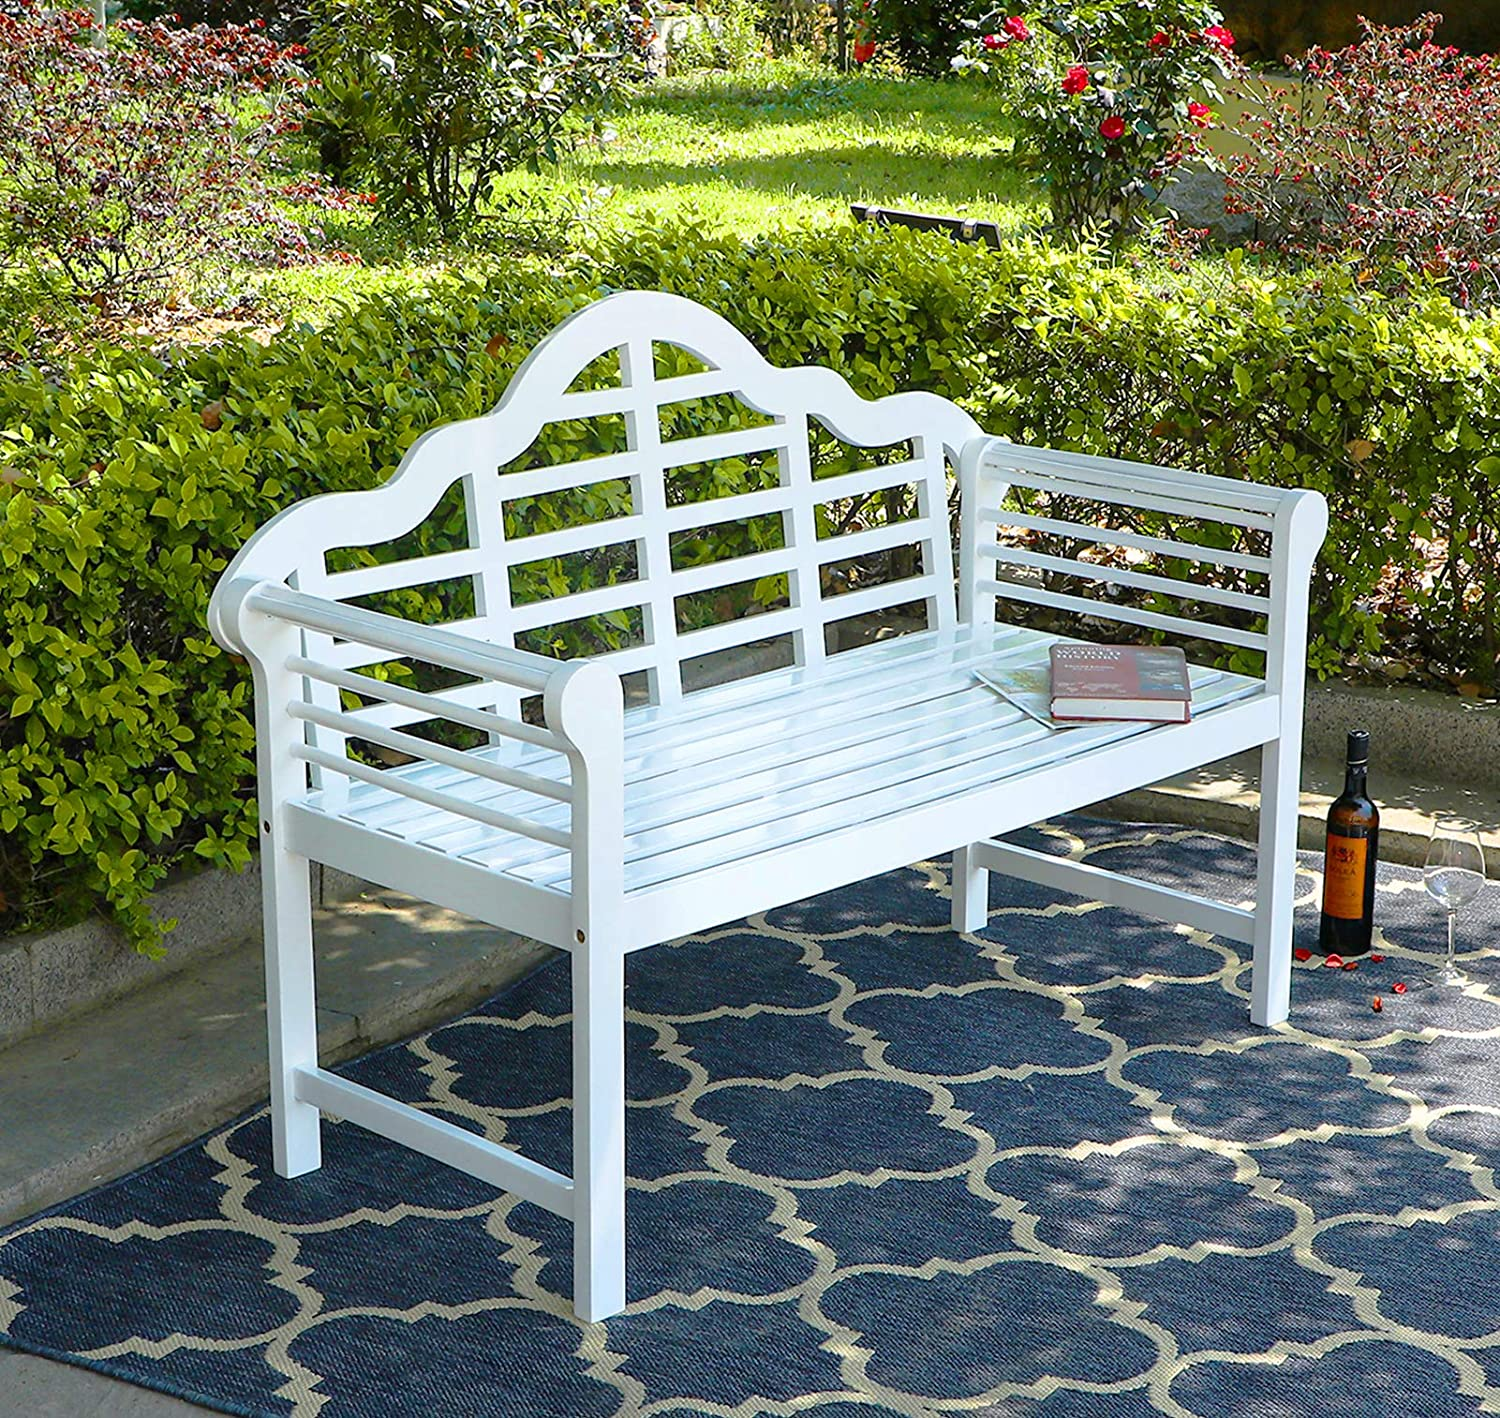 """PHI VILLA Outdoor Garden Bench, 53""""L Acacia Wood Bench with Backrest and Armrests, Elegant Design for Patio, Lawn, Balcony, Backyard, Porch and Indoor - White"""